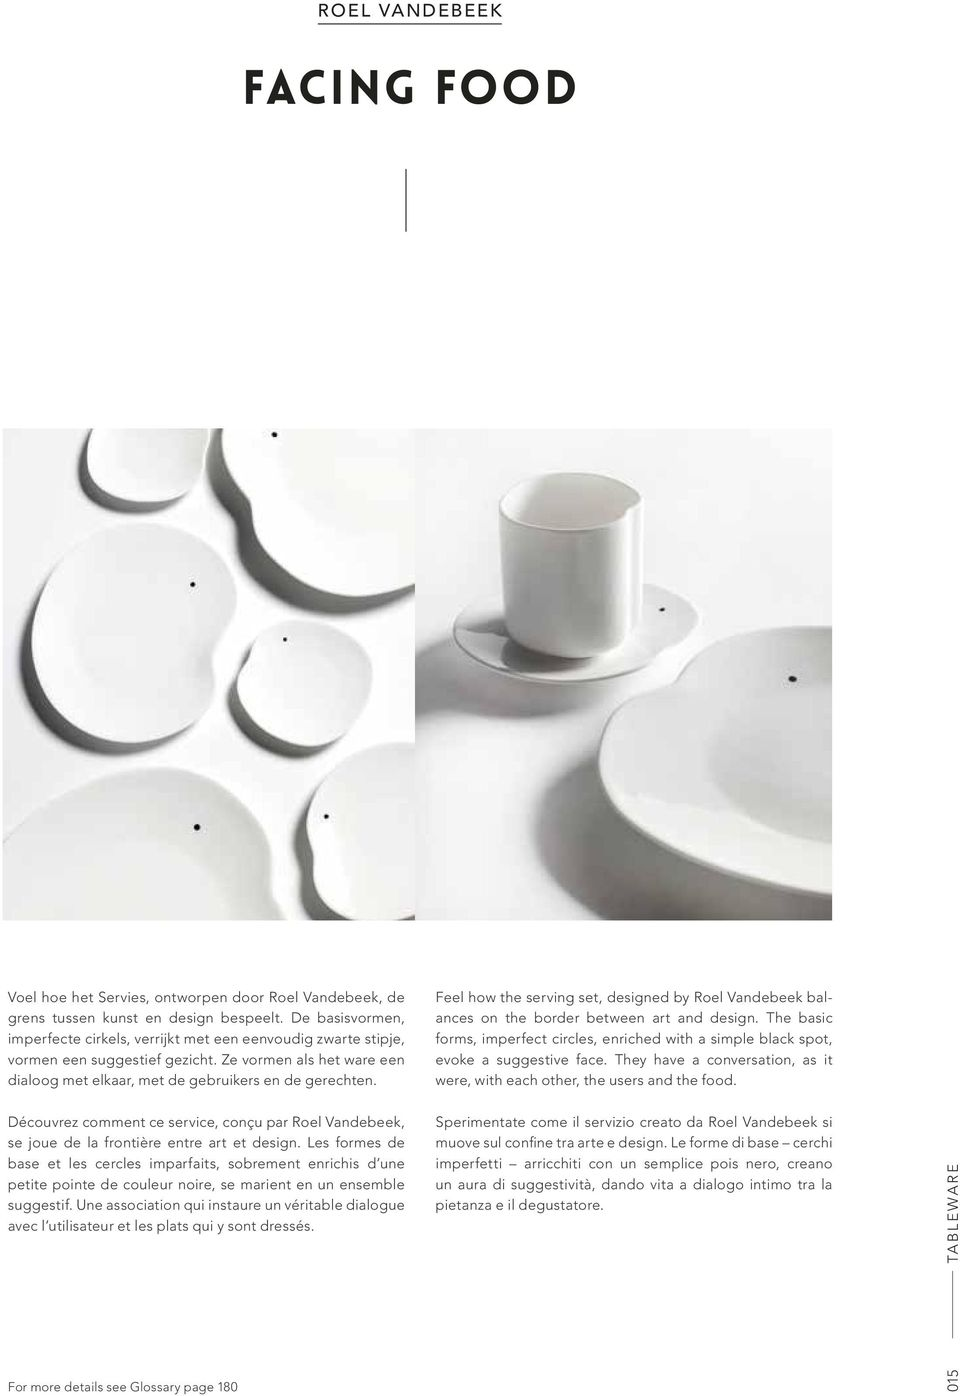 Feel how the serving set, designed by Roel Vandebeek balances on the border between art and design. The basic forms, imperfect circles, enriched with a simple black spot, evoke a suggestive face.